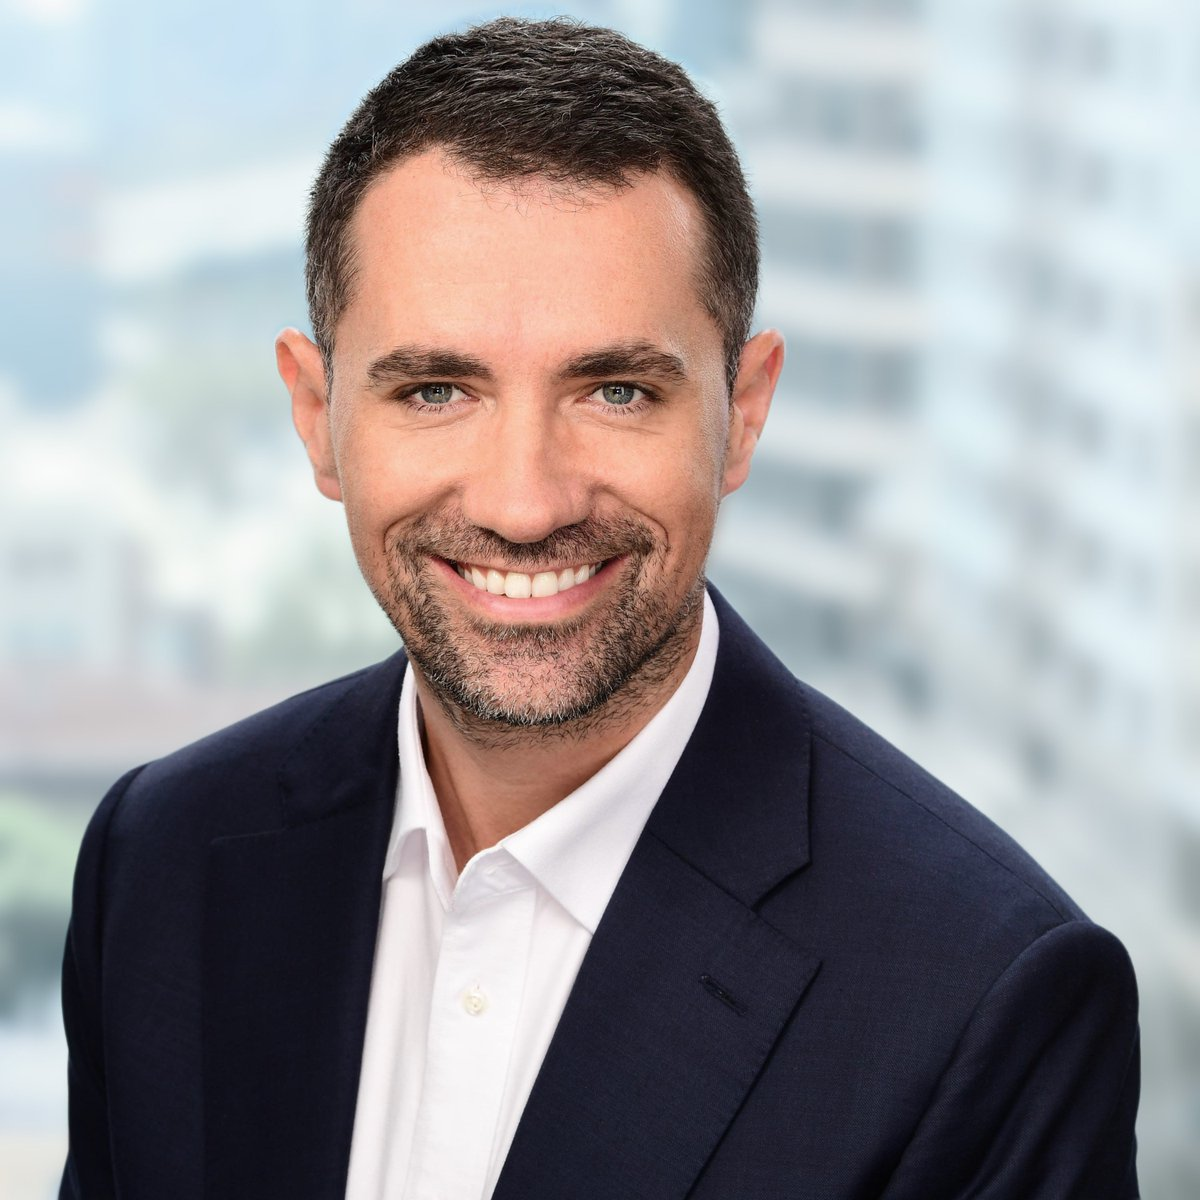 test Twitter Media - @IABAustralia appoints @newscorpaus Cameron King as chair – read on in @AdNews https://t.co/QIEC2CGdxw https://t.co/uiK9F5vReL